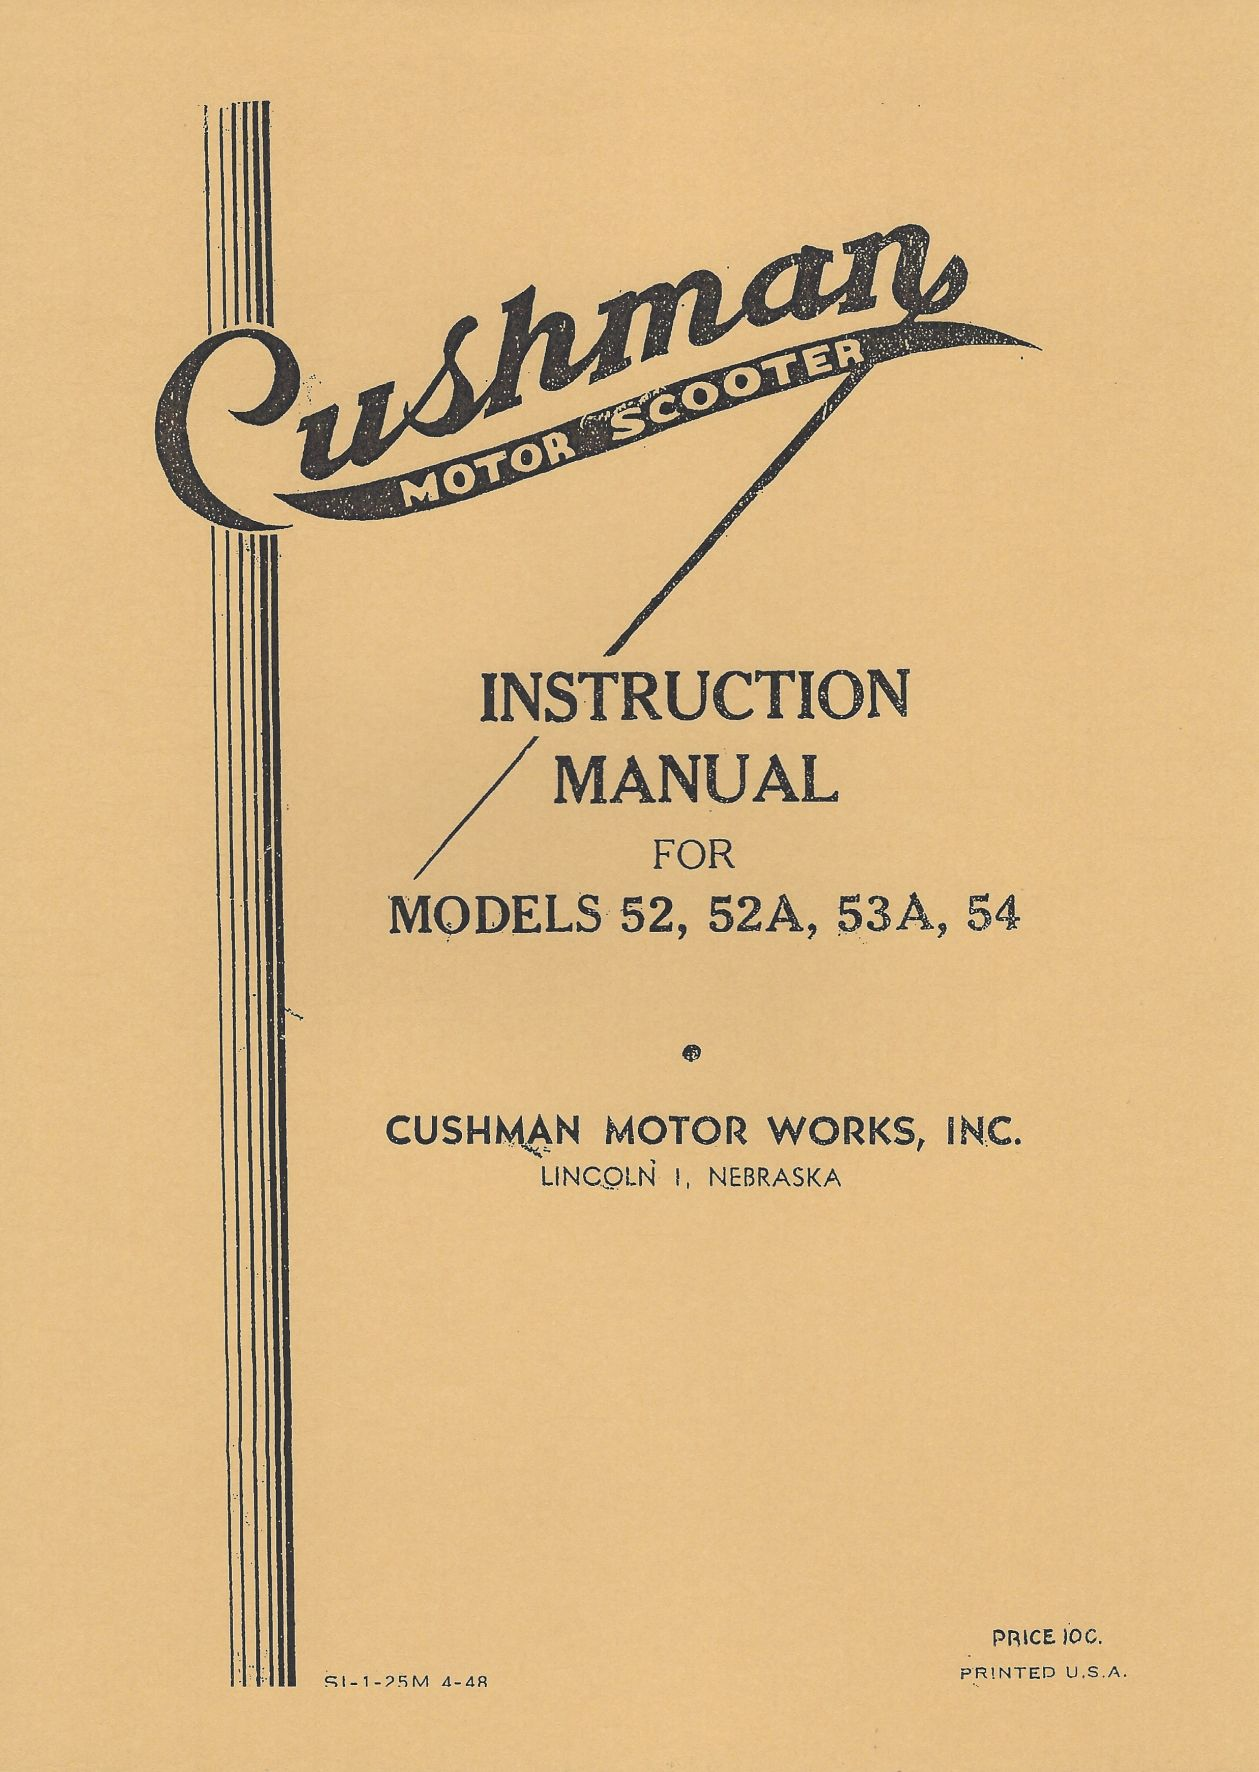 CUSHMAN INSTRUCTION MANUAL FOR MODELS 52, 52A, 53A, 54